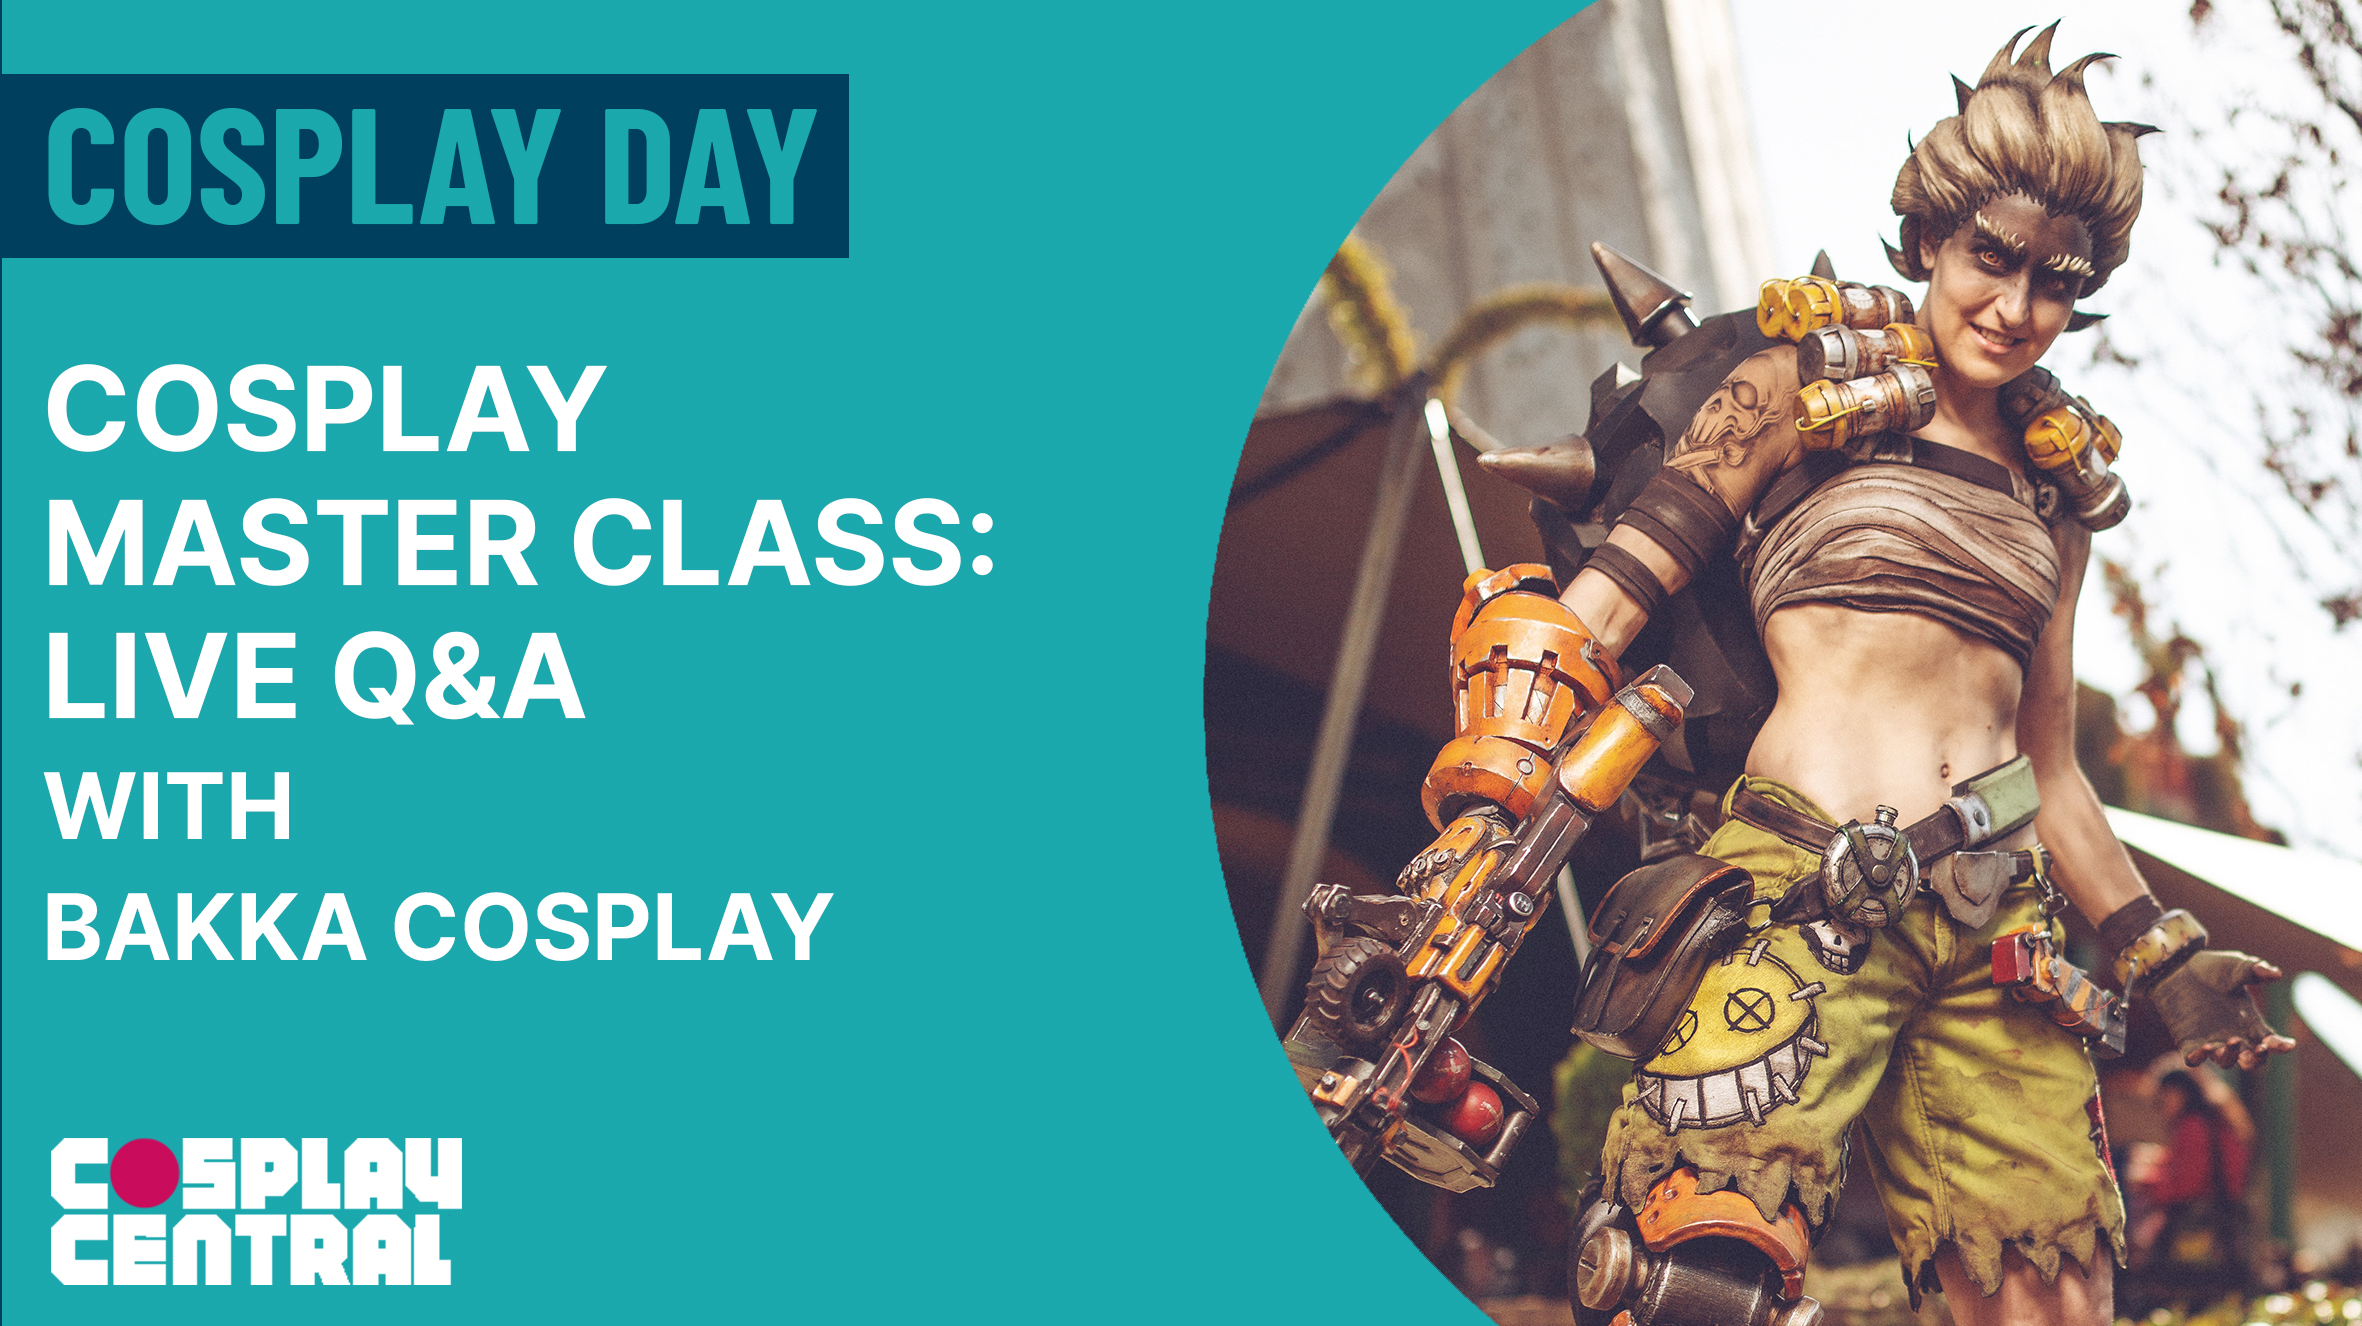 Image for Cosplay Master Class | The Art of Cosplay Wig Making - Live Q&A with Bakka Cosplay - Cosplay Day 2021